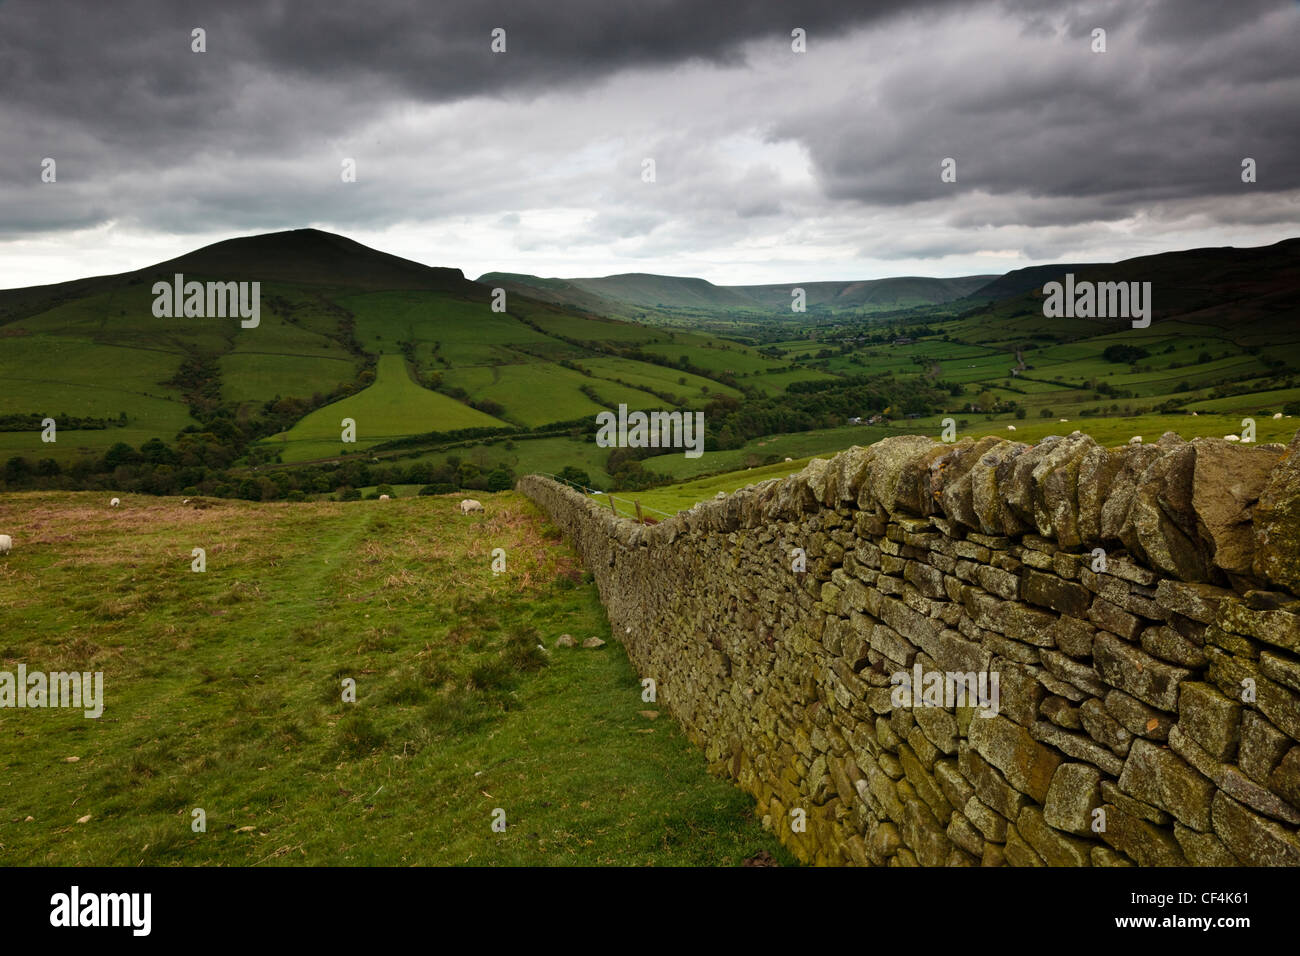 A dry stone wall leading towards Lose Hill in the Peak District National Park. - Stock Image